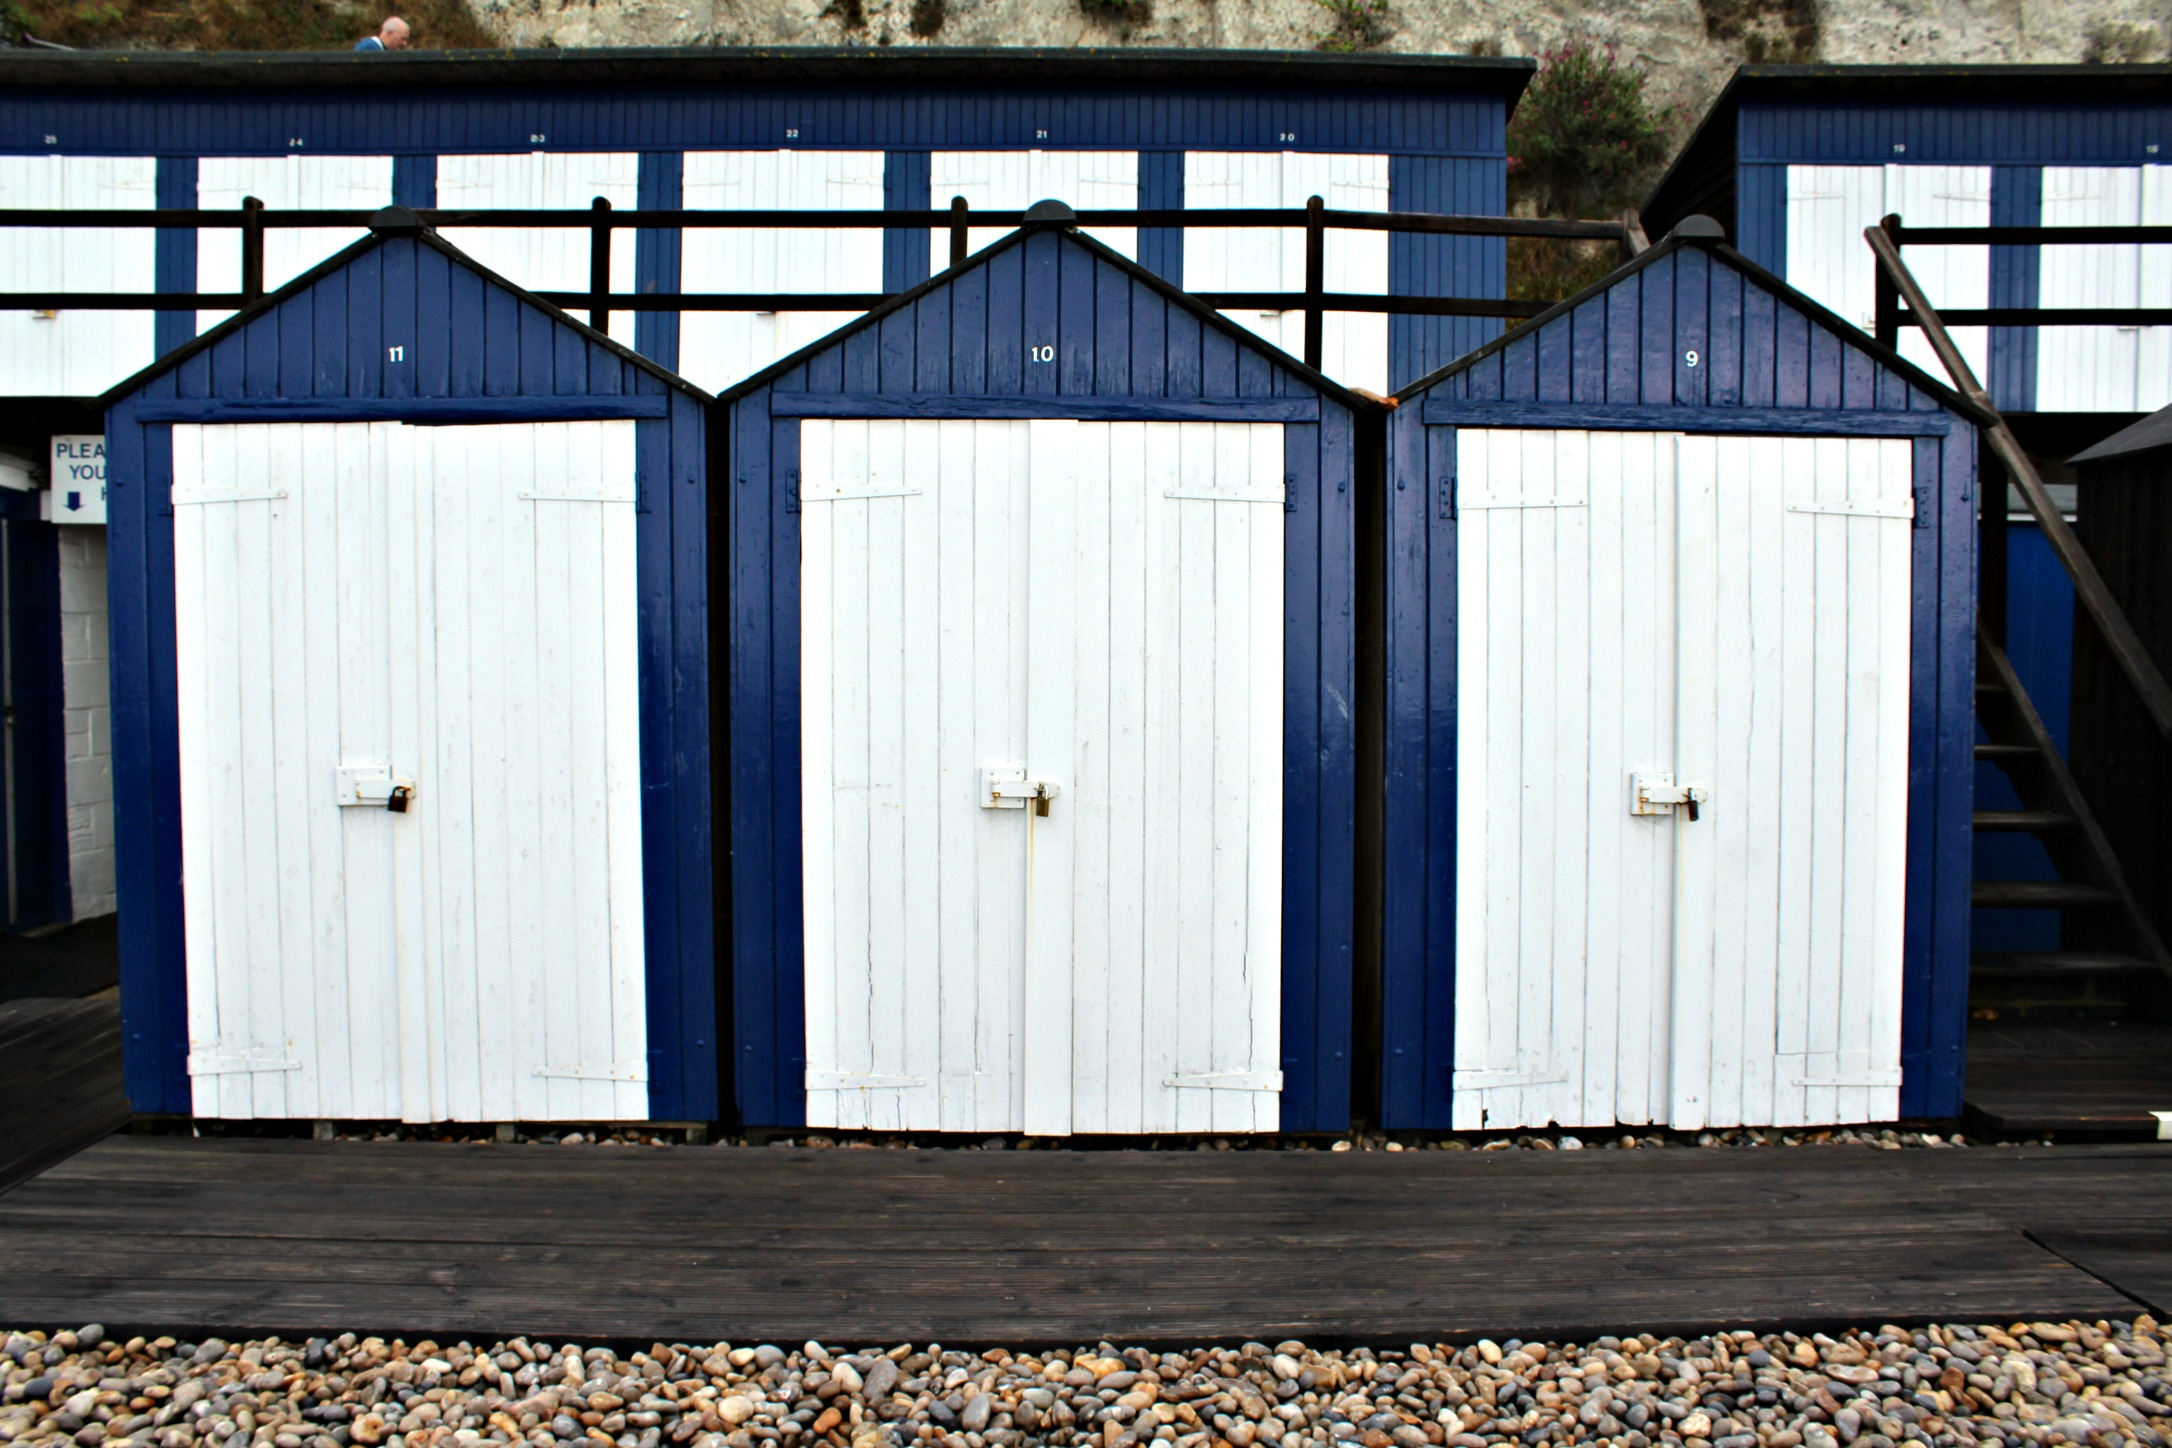 you can rent a beach hut for 10GBP for a whole day